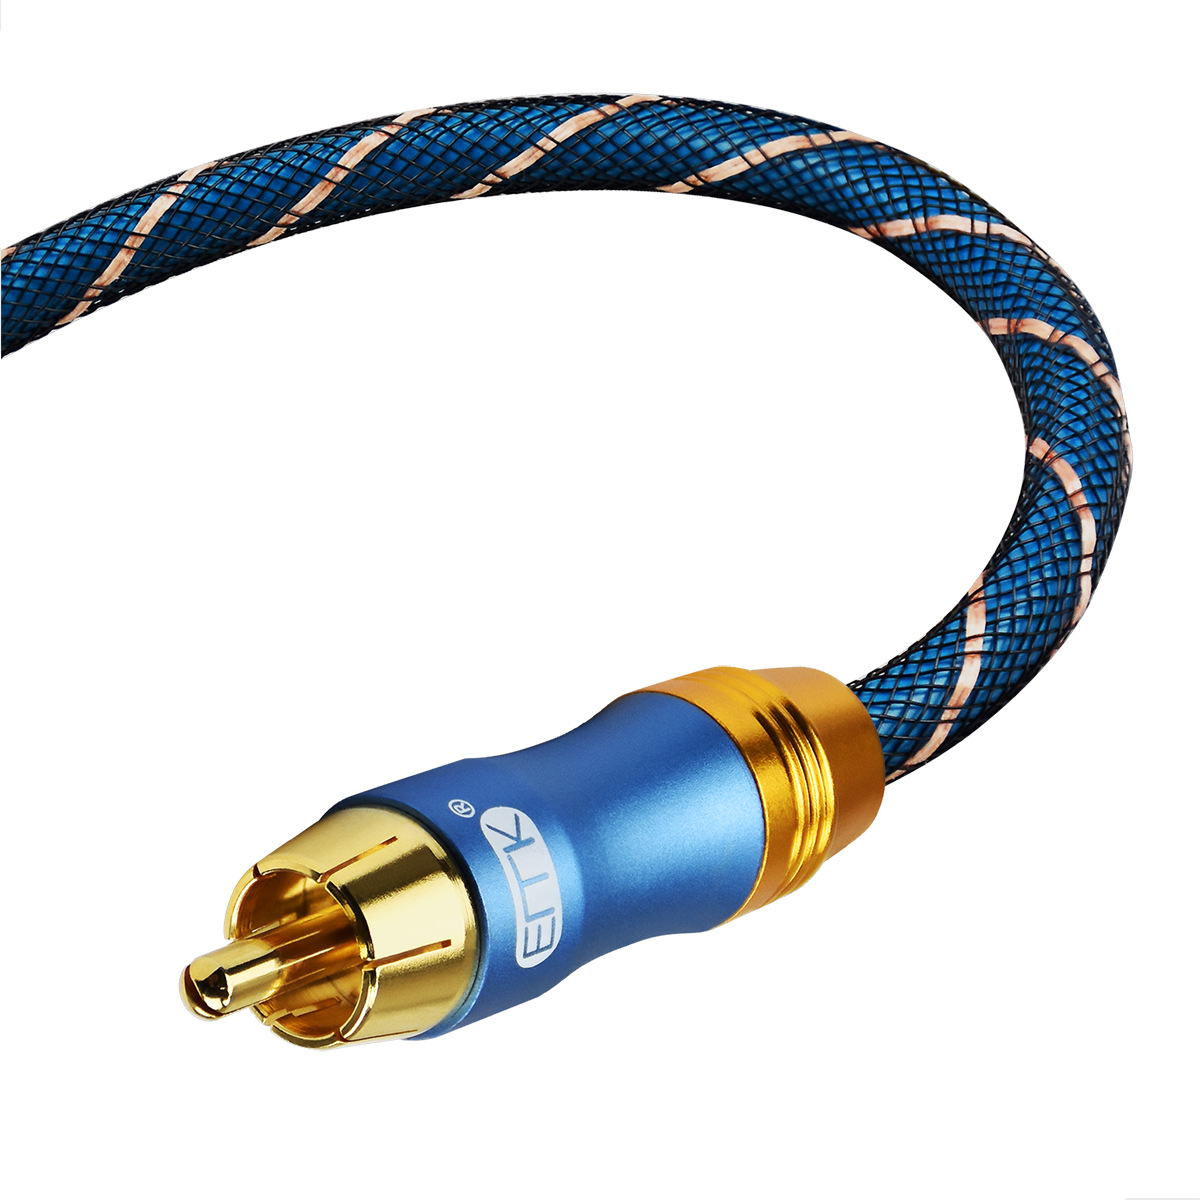 EMK 3.5 Male to Male Audio Cable Gold Plated Braid Jack For iPhone XS 11Pro Huawei P30 P40 Car Headphone Computer Speaker